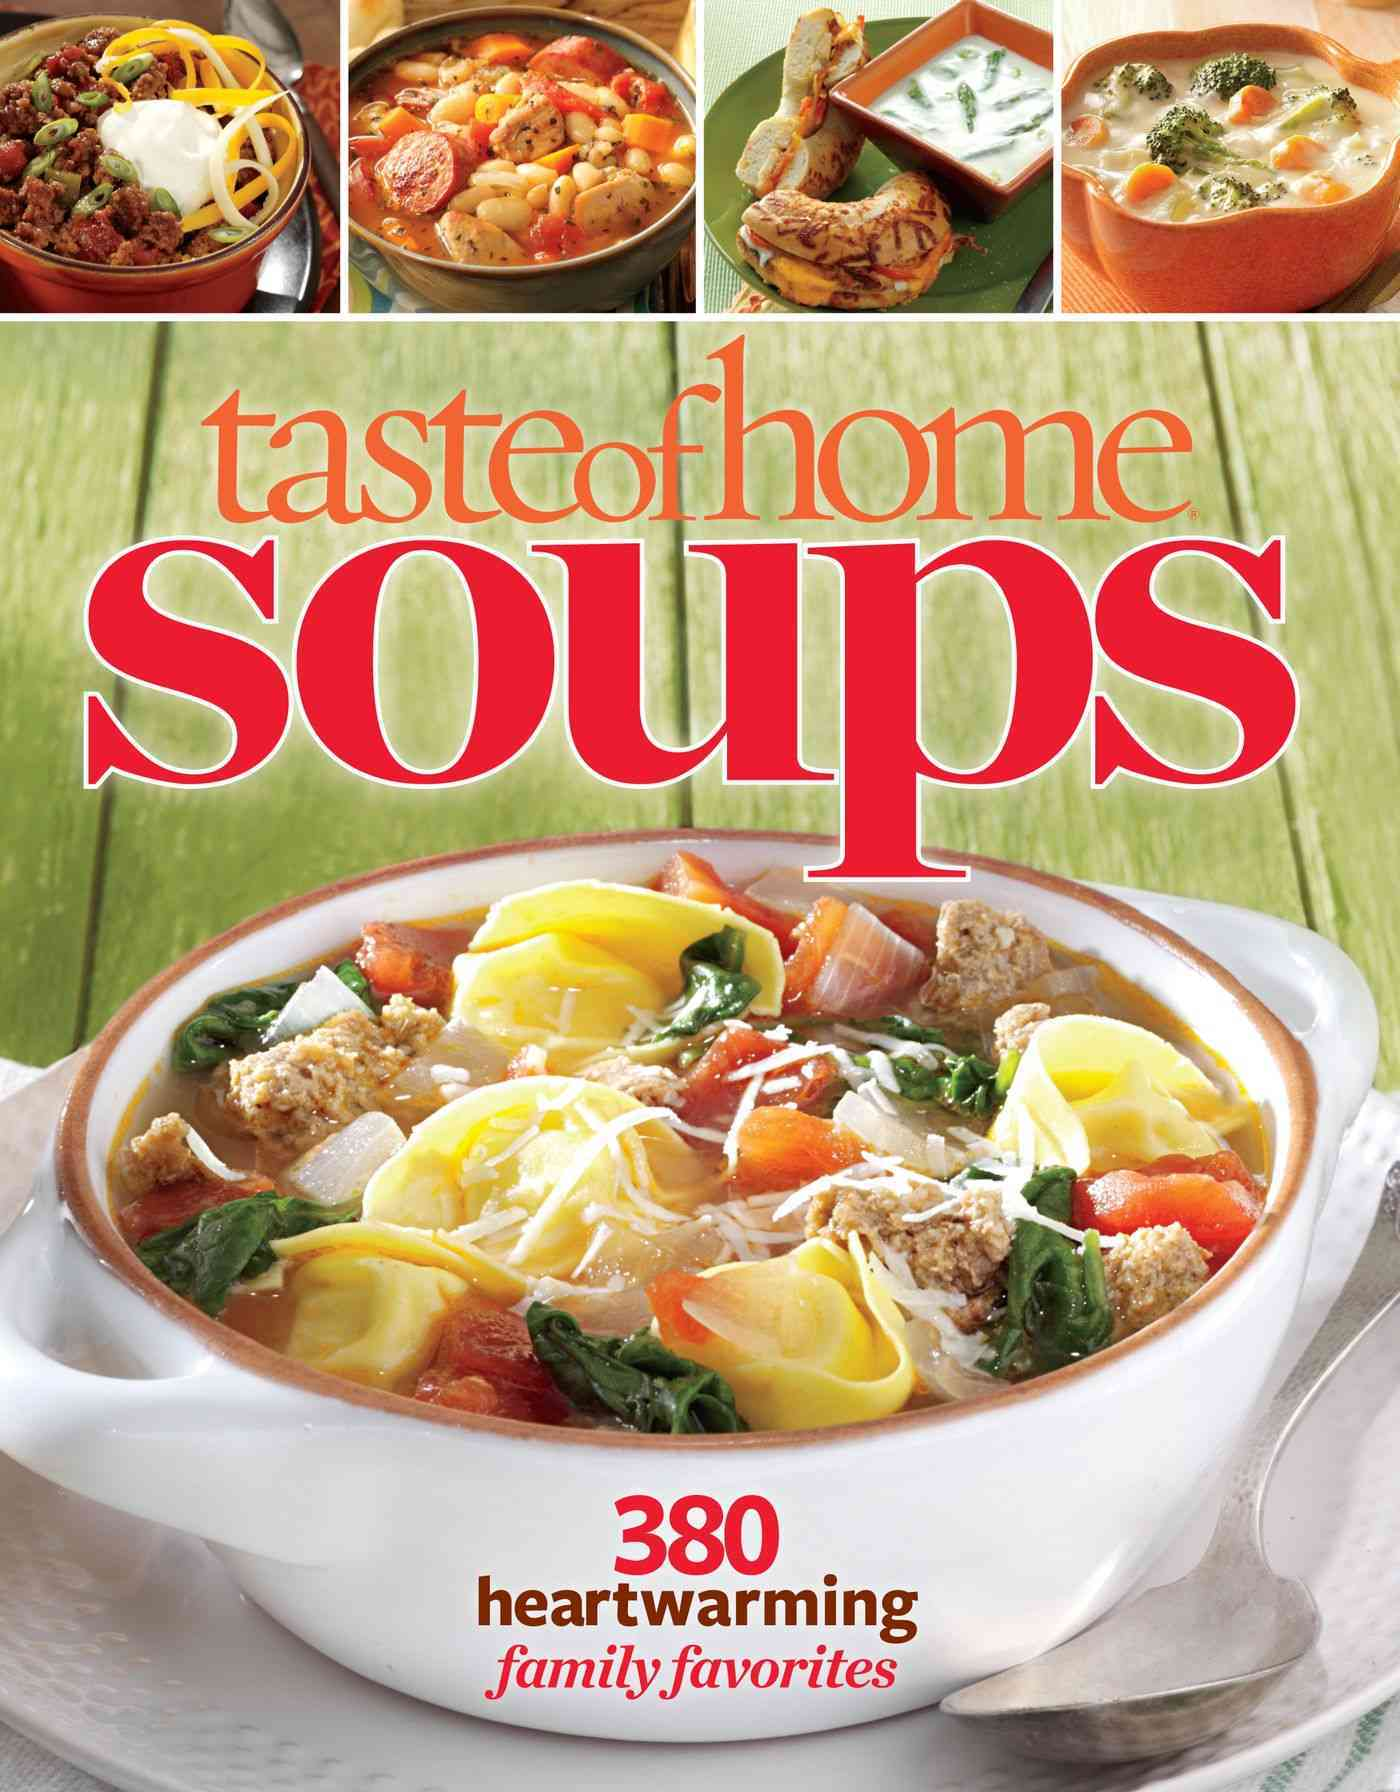 Taste of Home Soups By Taste of Home (COR)